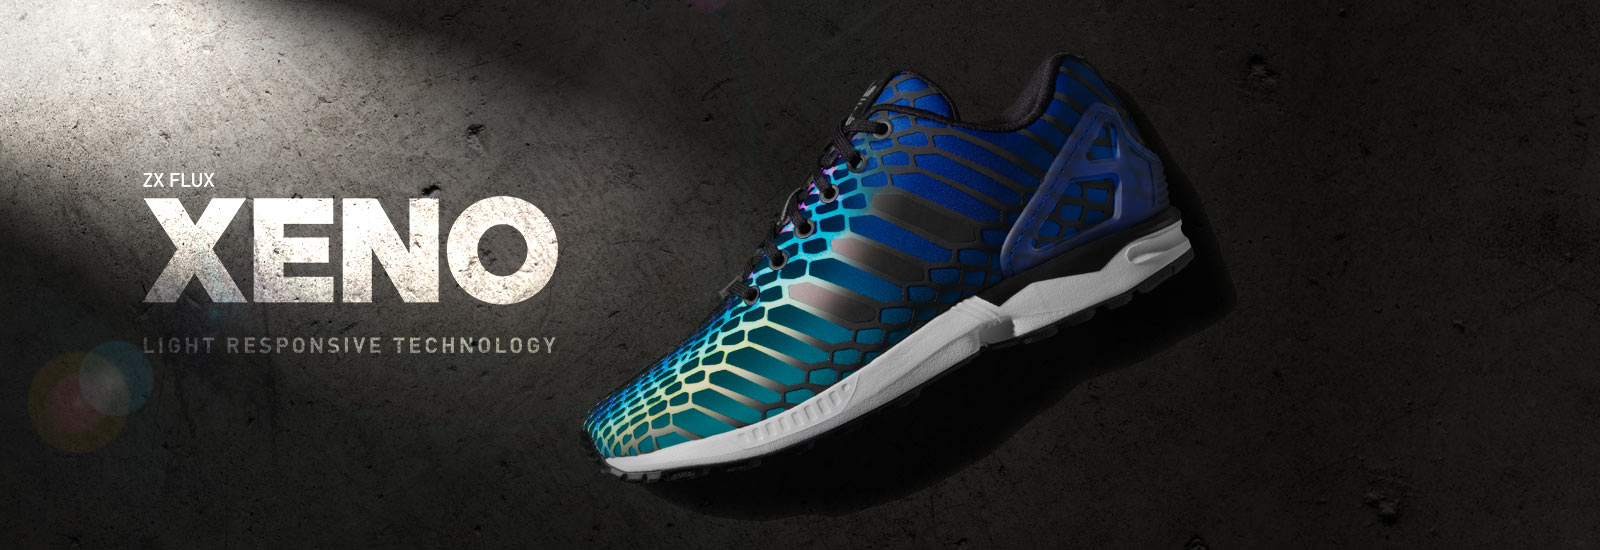 EBHP-Spotlight-Full-121115-Adidas-1600x550